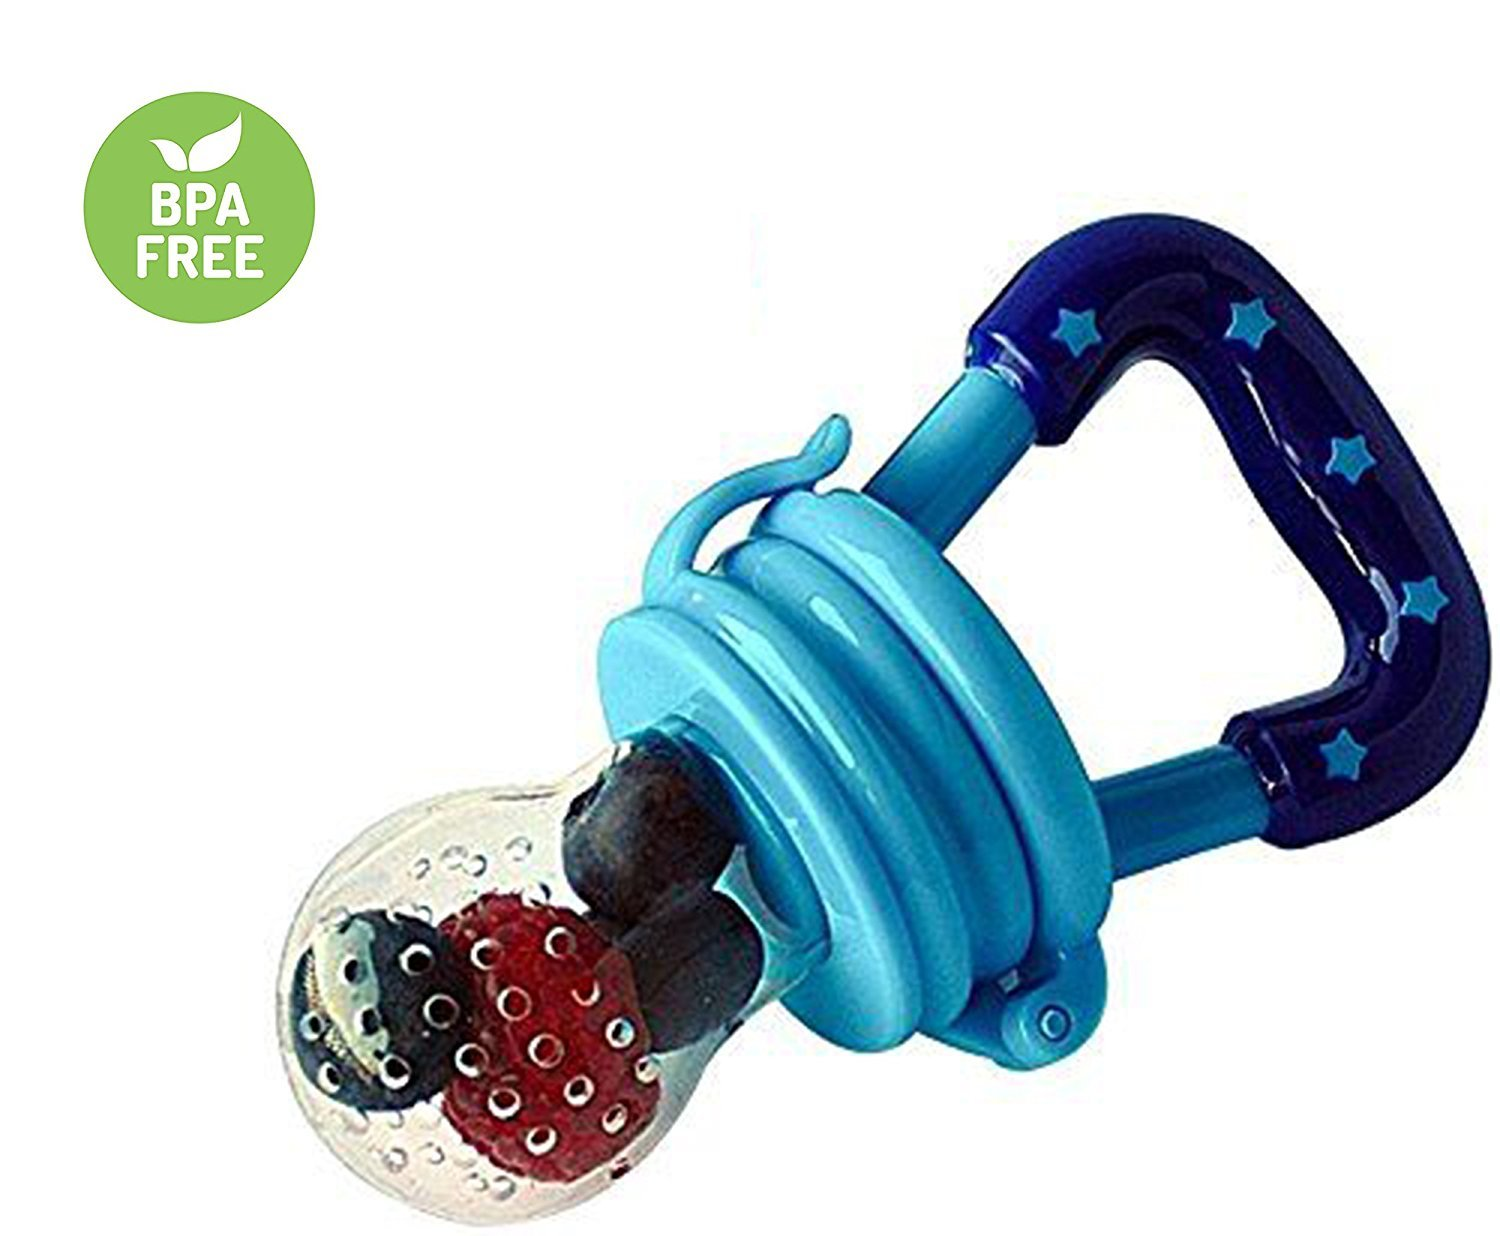 Baby Fresh Food Feeder | Baby Teether | Baby Teething Toys | Baby Fruit Feeder | Mesh Teether, 3 Pack Fruit Food Silicone Nipple Teething Toy Reusable Aching Gums Pacifier,Blue Portable Infant Food